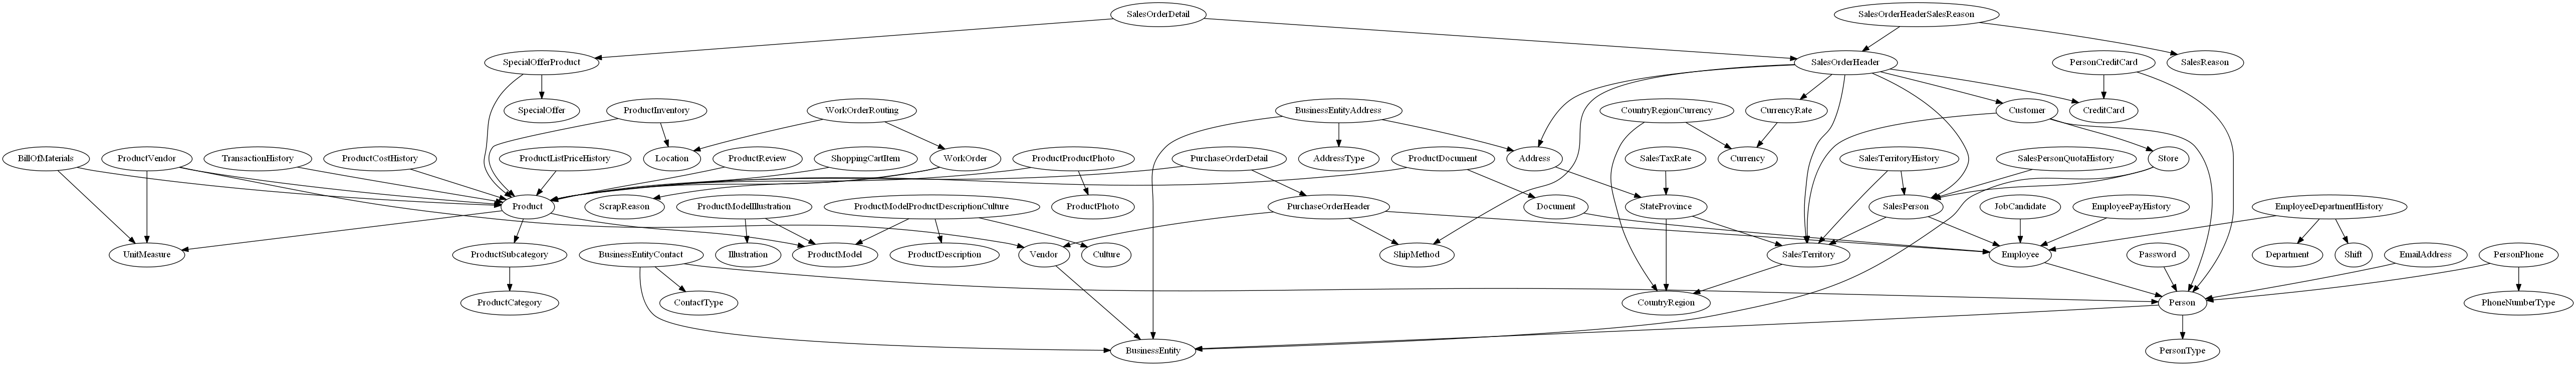 Automatically Creating Uml Database Diagrams For Sql Server Simple Process Flow Diagram Using Staruml 2405 Clip Image013